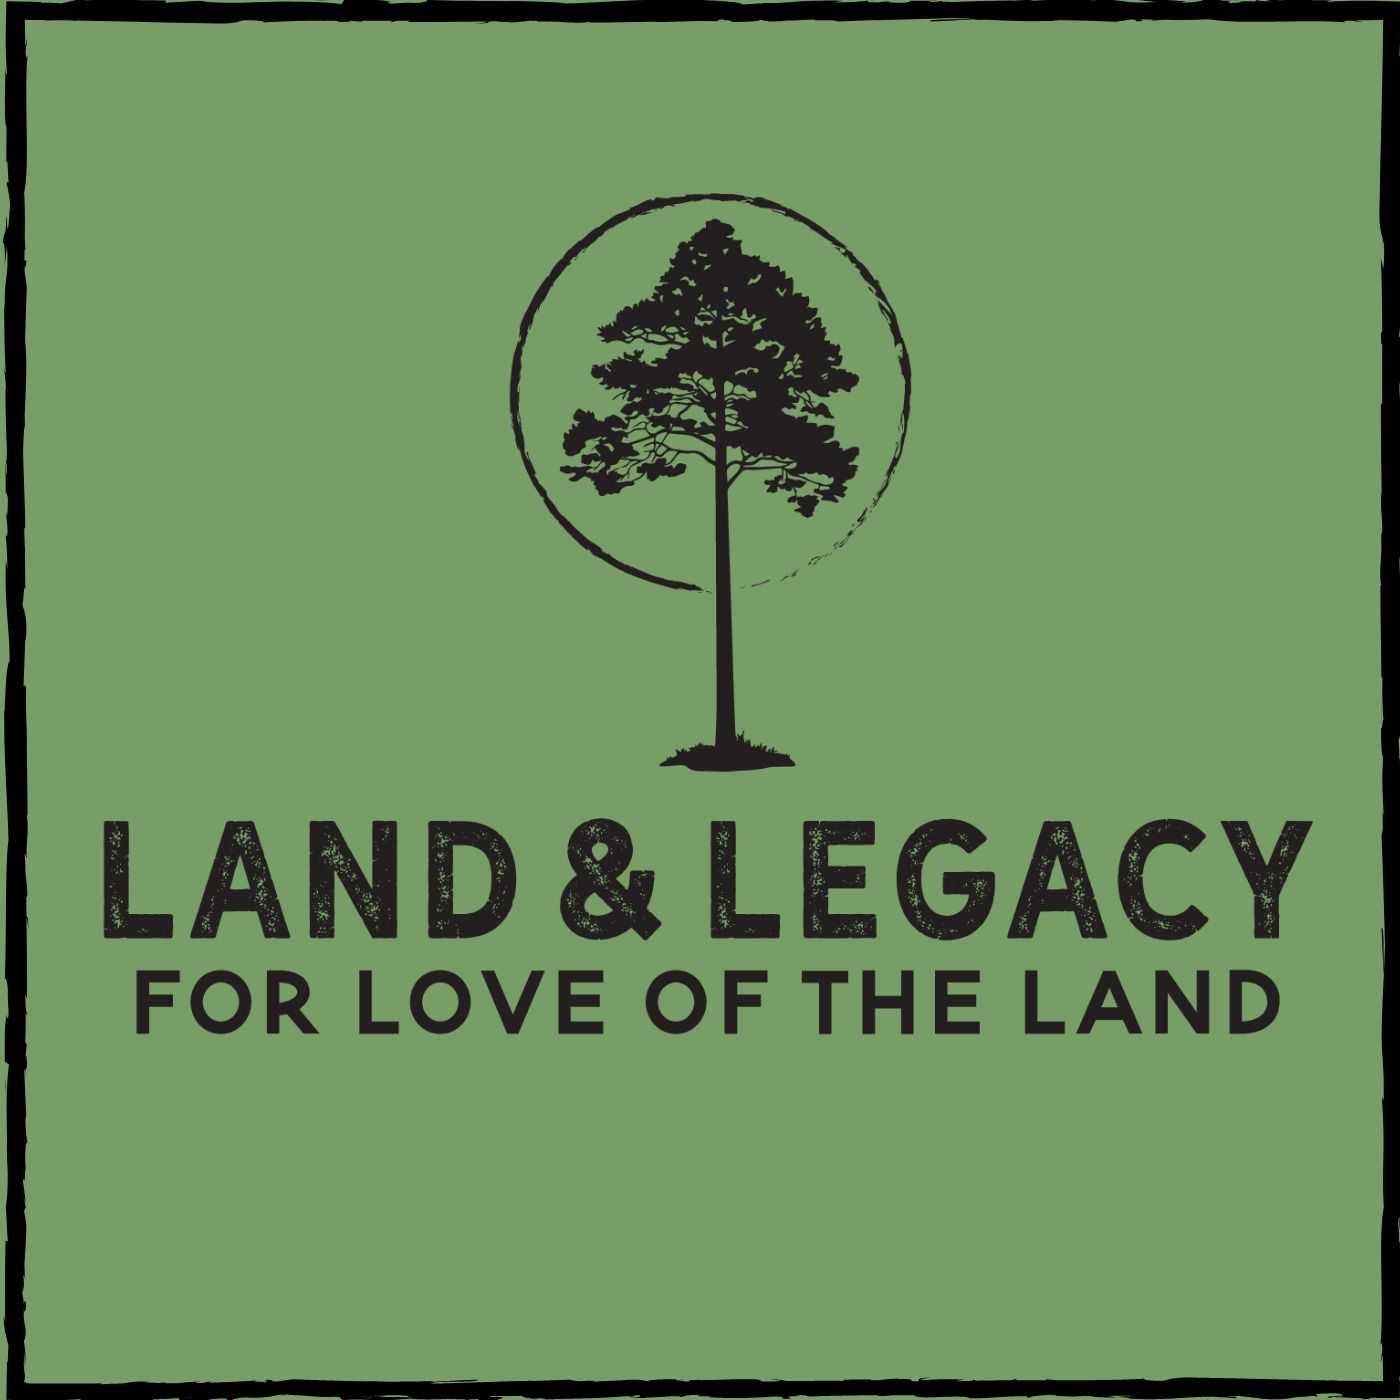 Land & Legacy - Evaluating the Results of Prescribed Fire